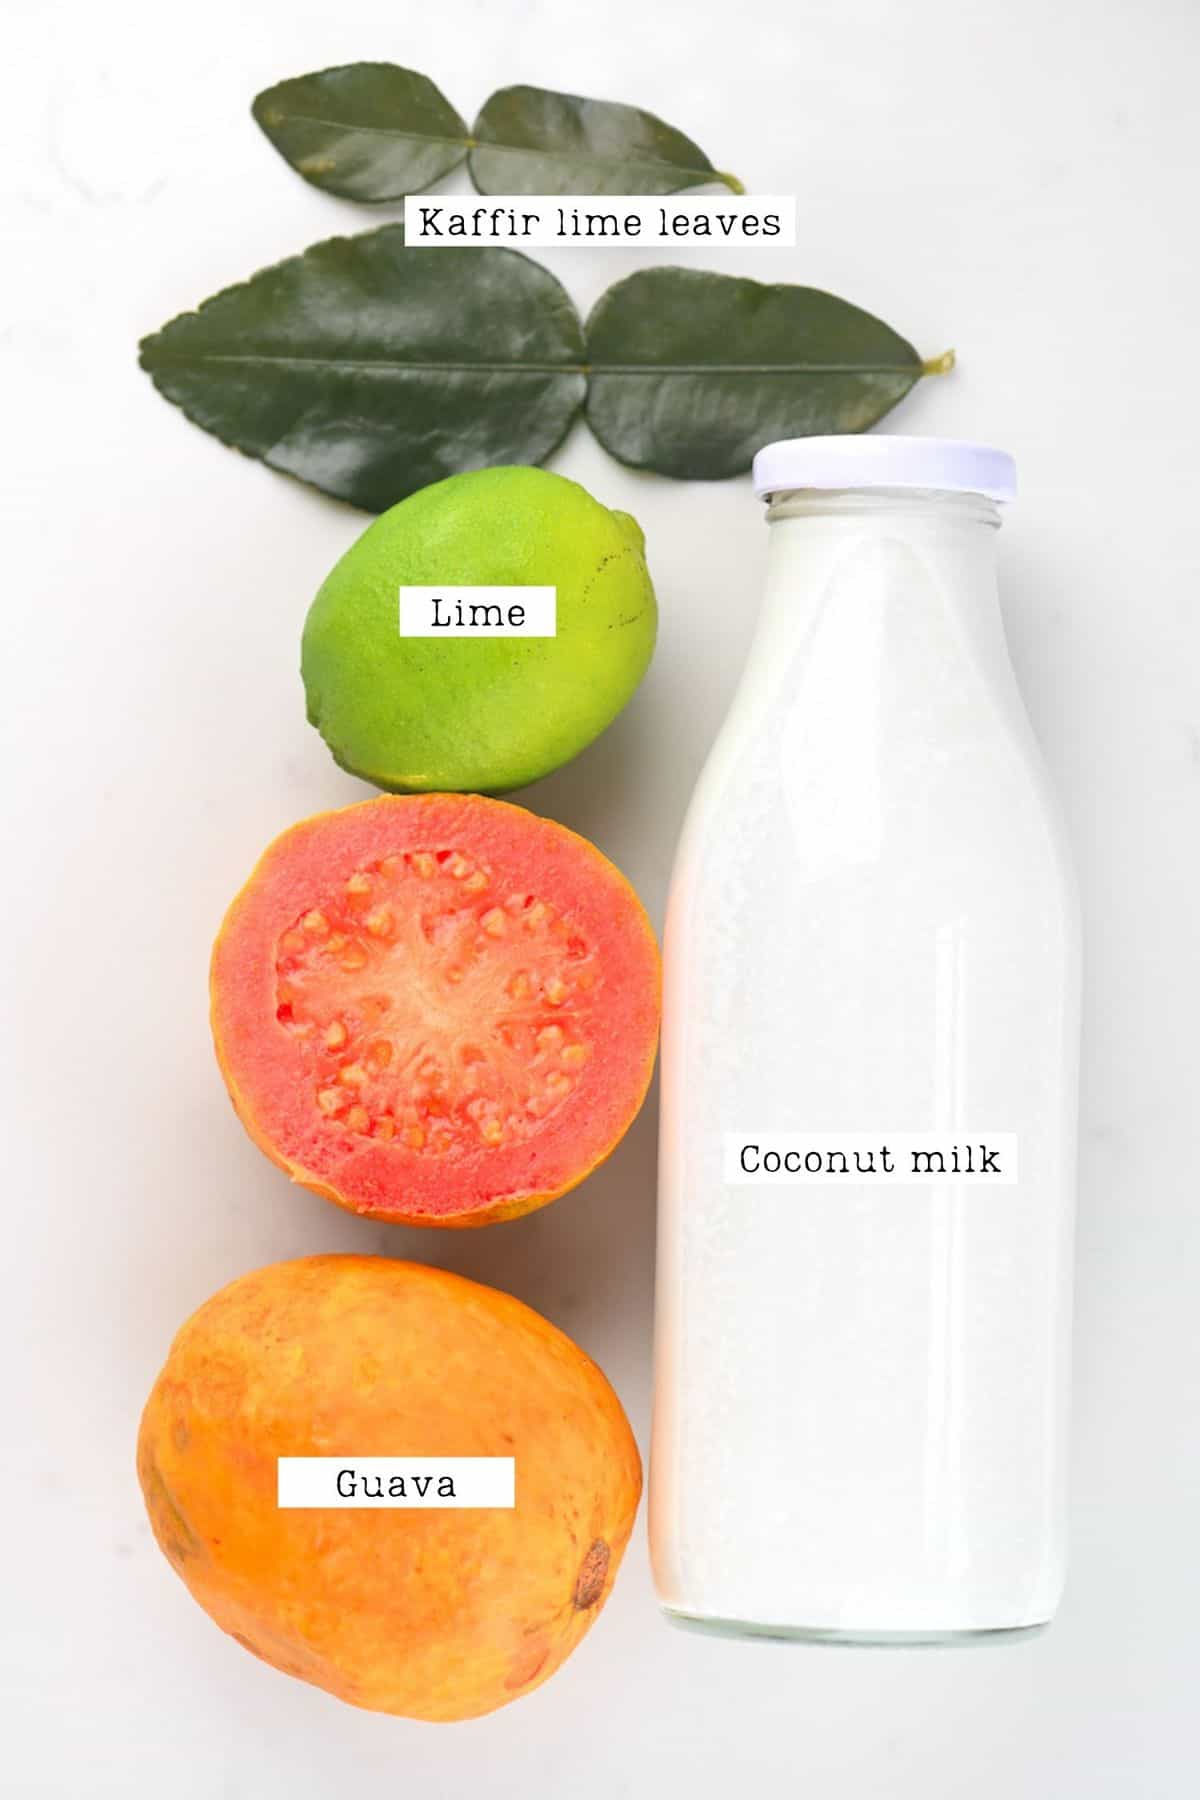 Guava Cocktail Ingredients